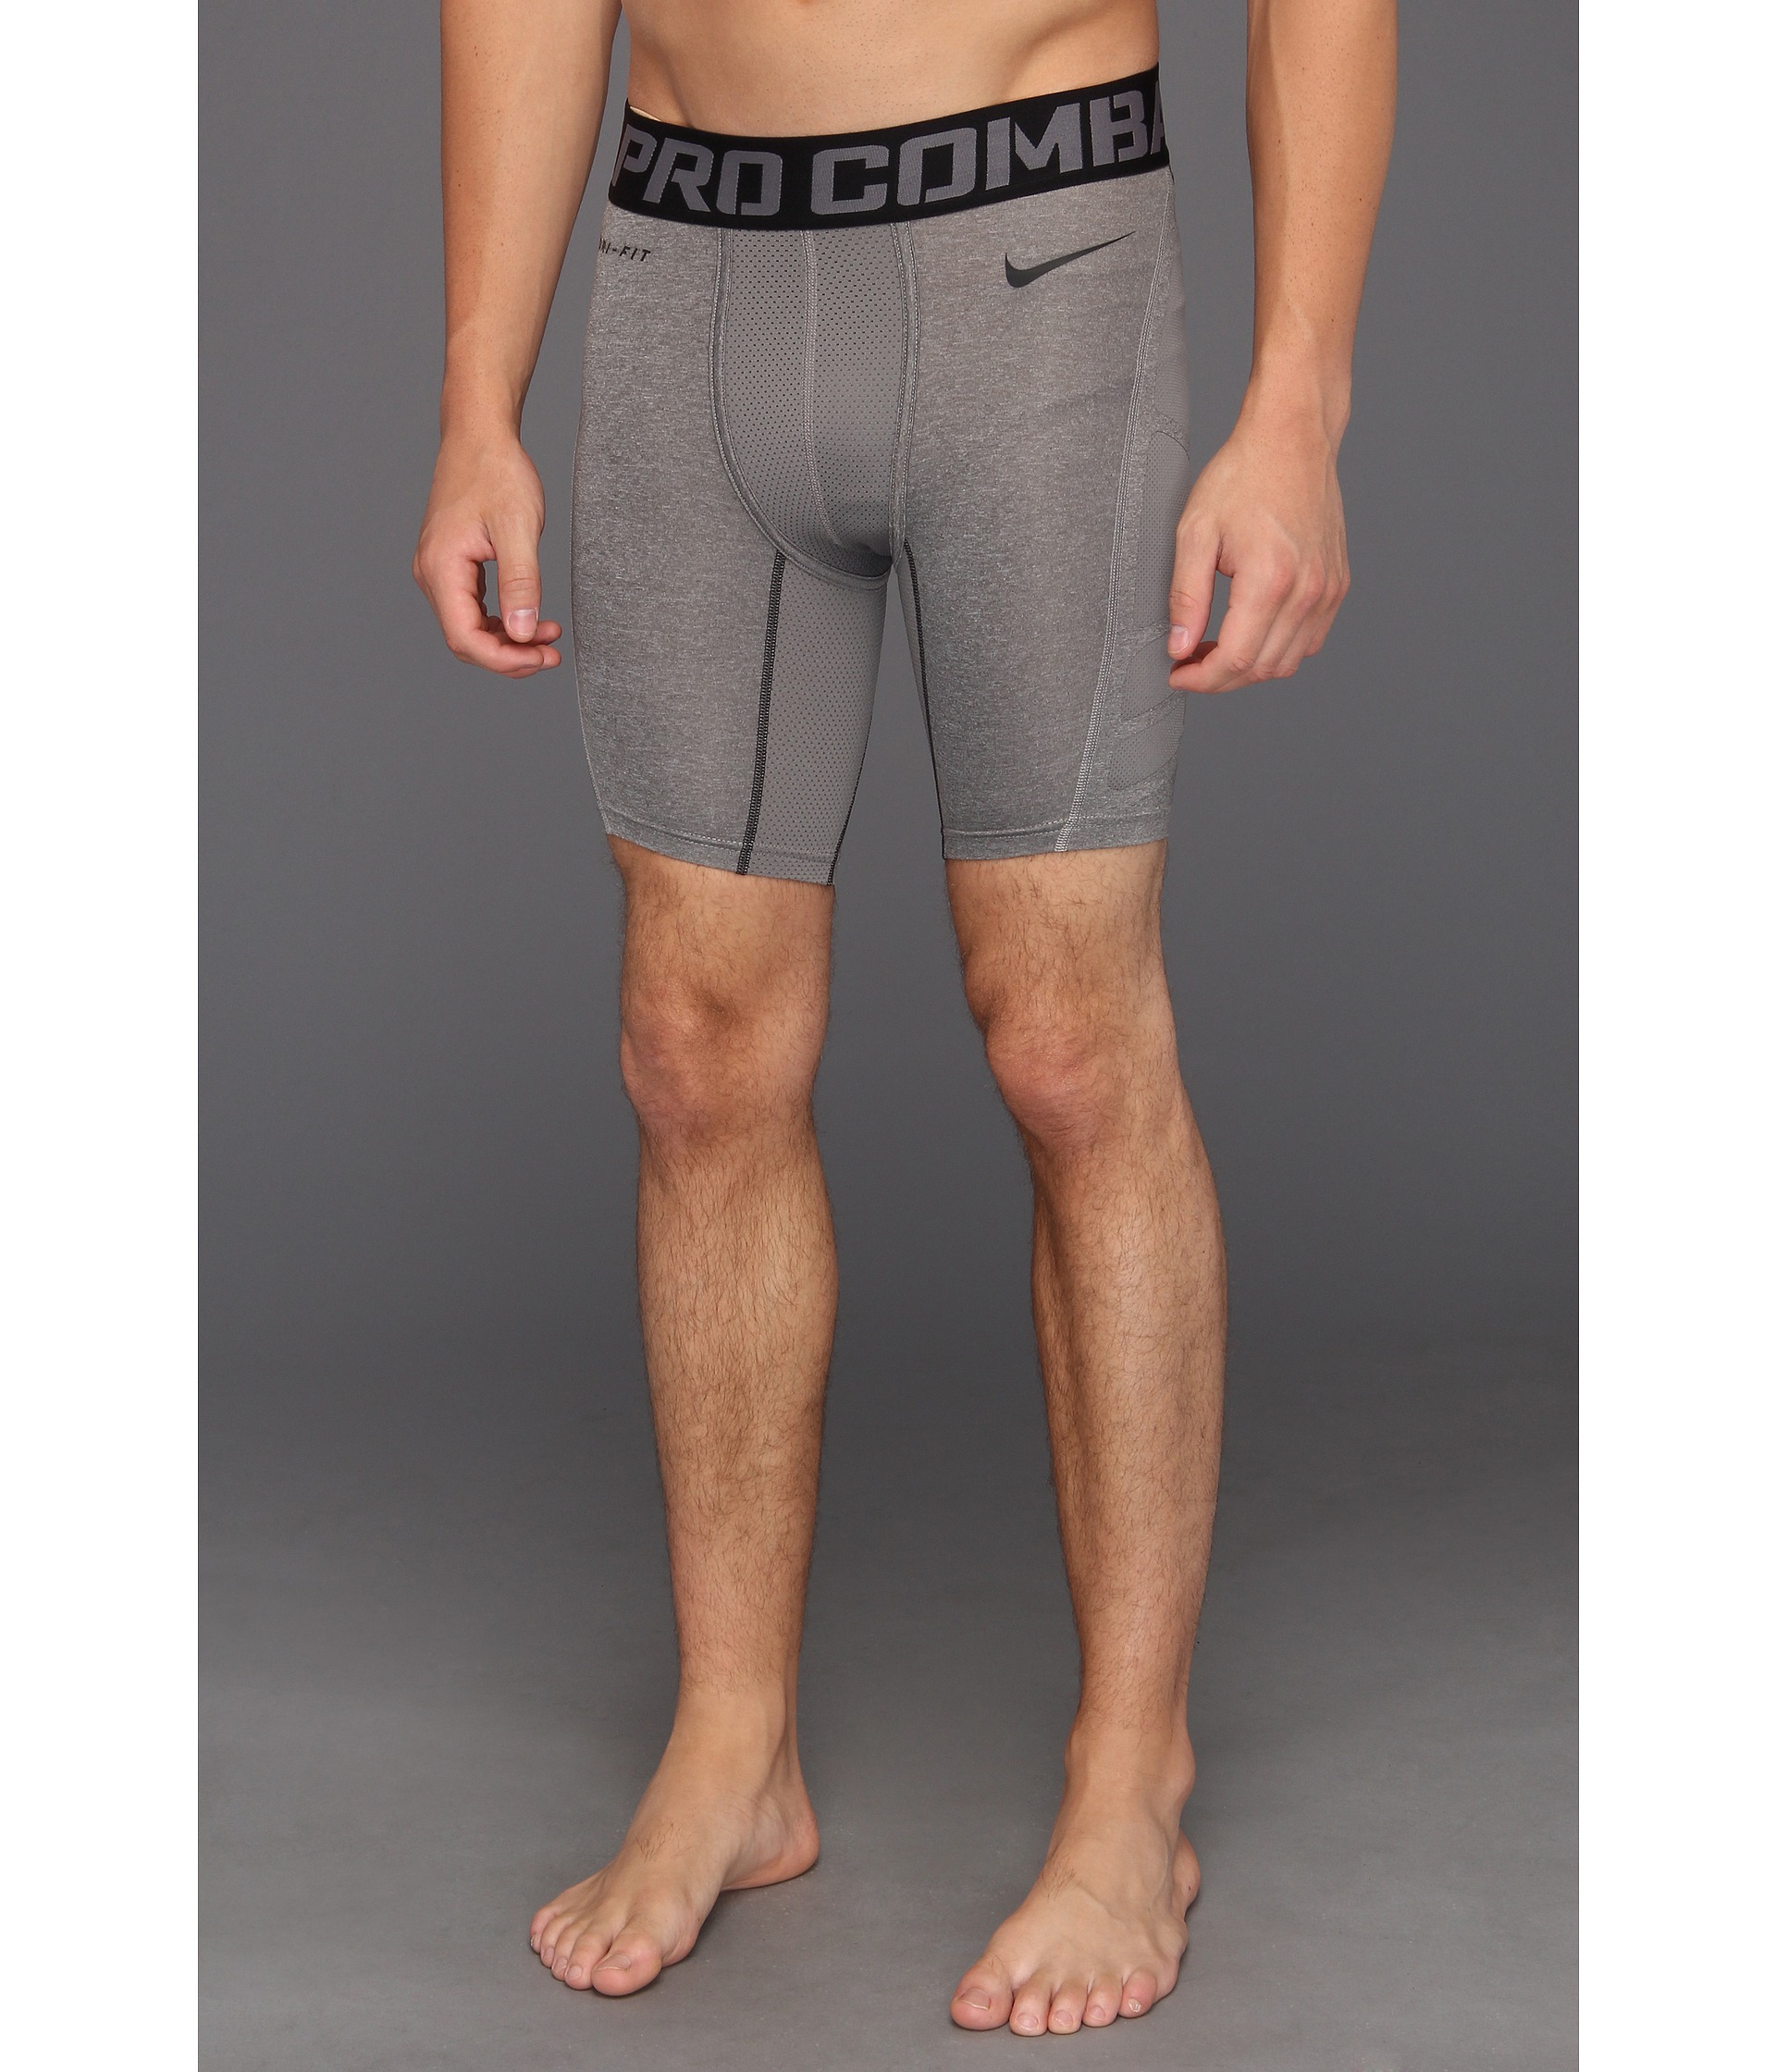 4e6f0bfae6 Nike Pro Combat Hypercool Compression 6-Inch Short 2.0 in Gray for ...